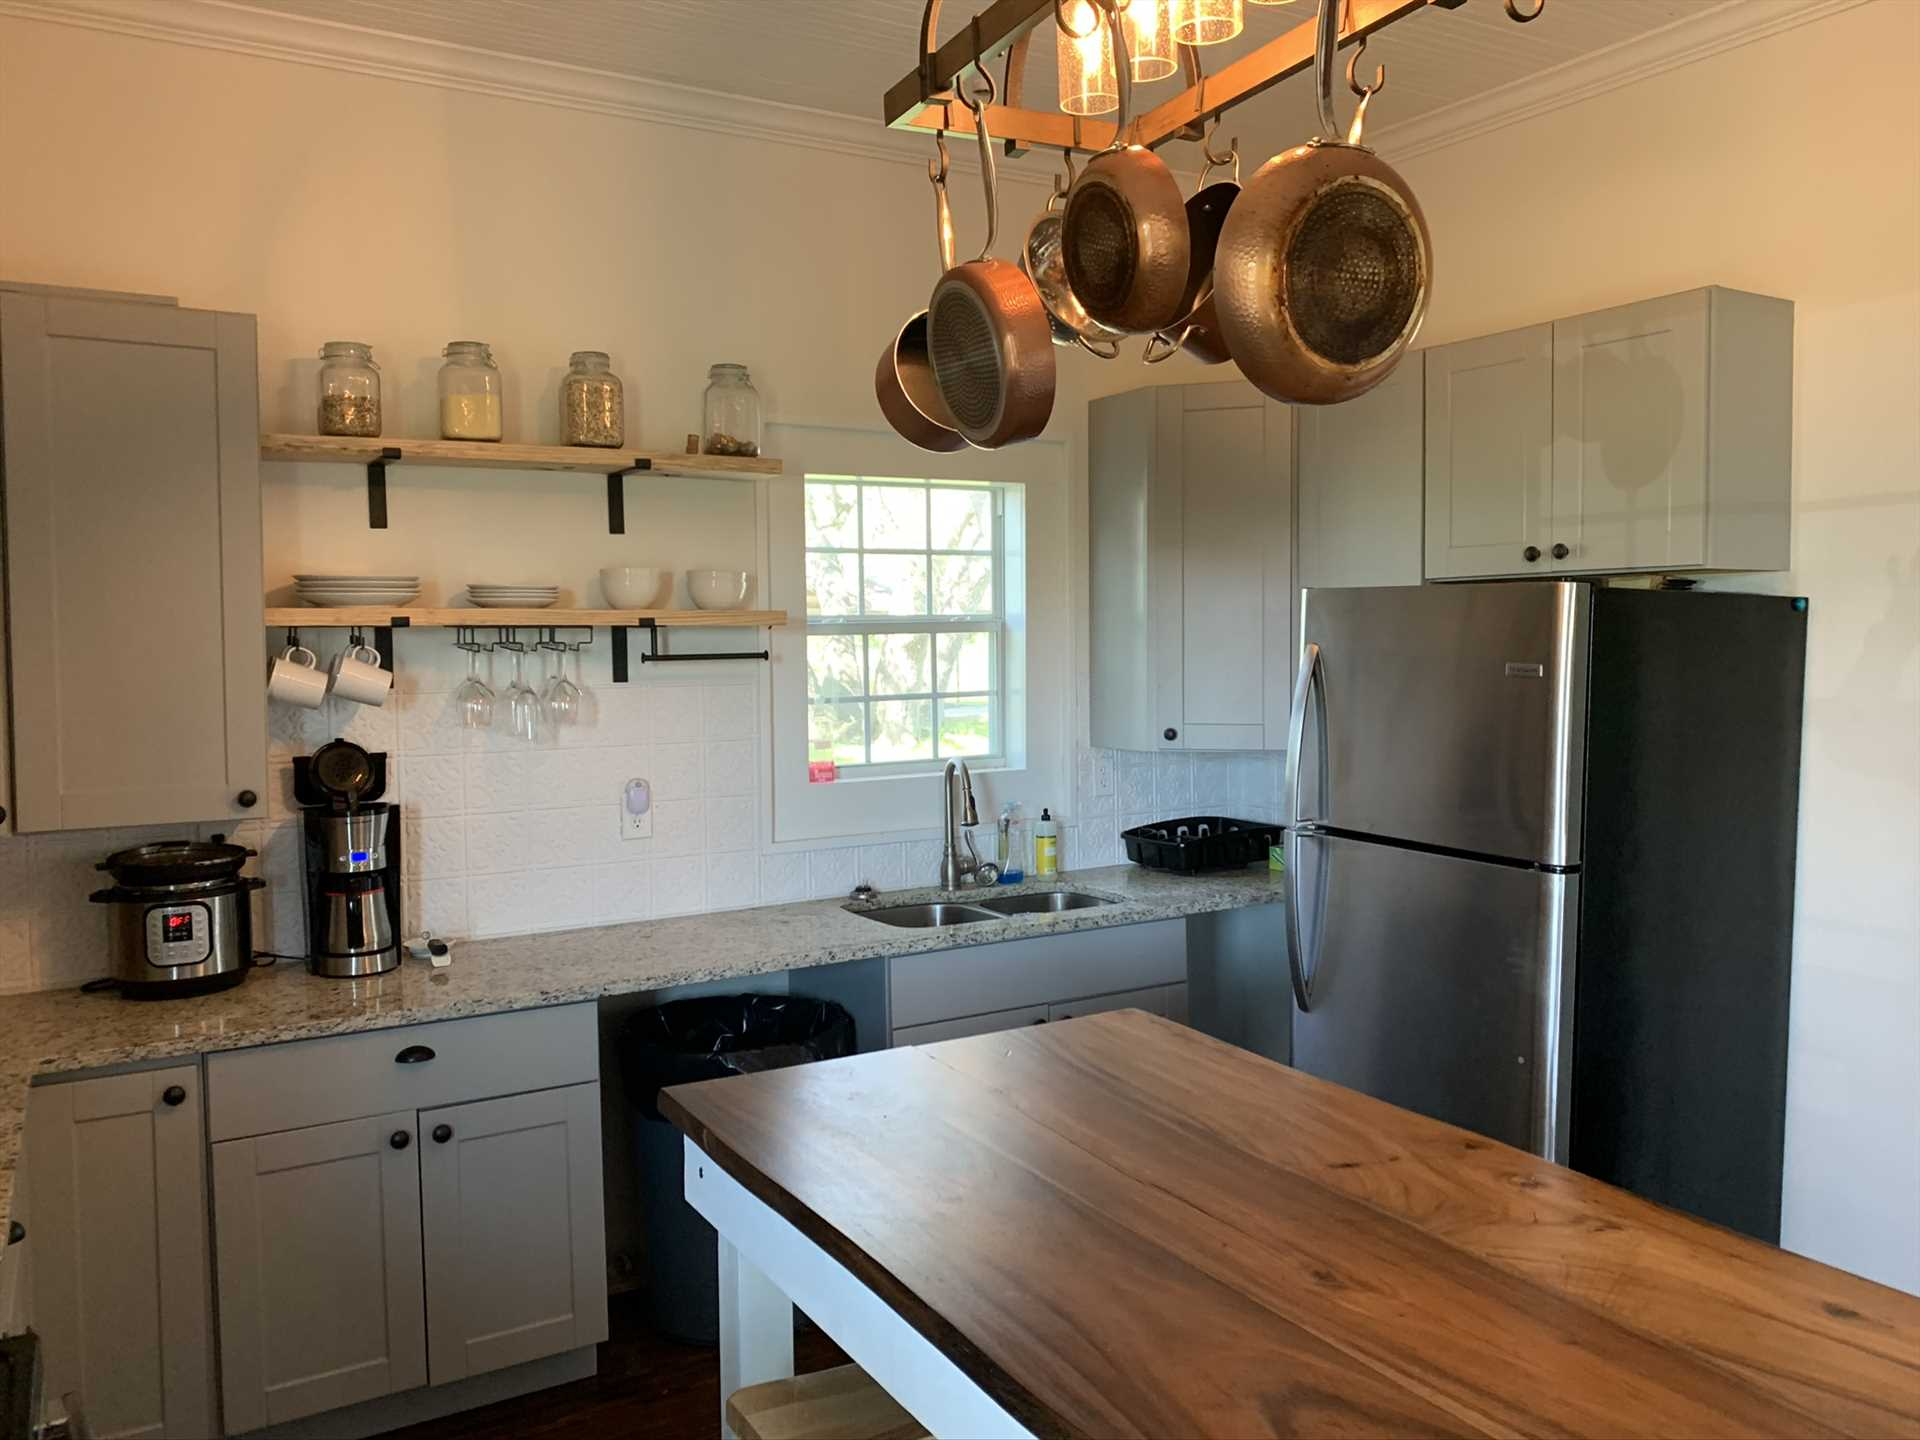 The cooks in your crew will love the appliances, cookware, and serving ware provided in the comfy country kitchen.